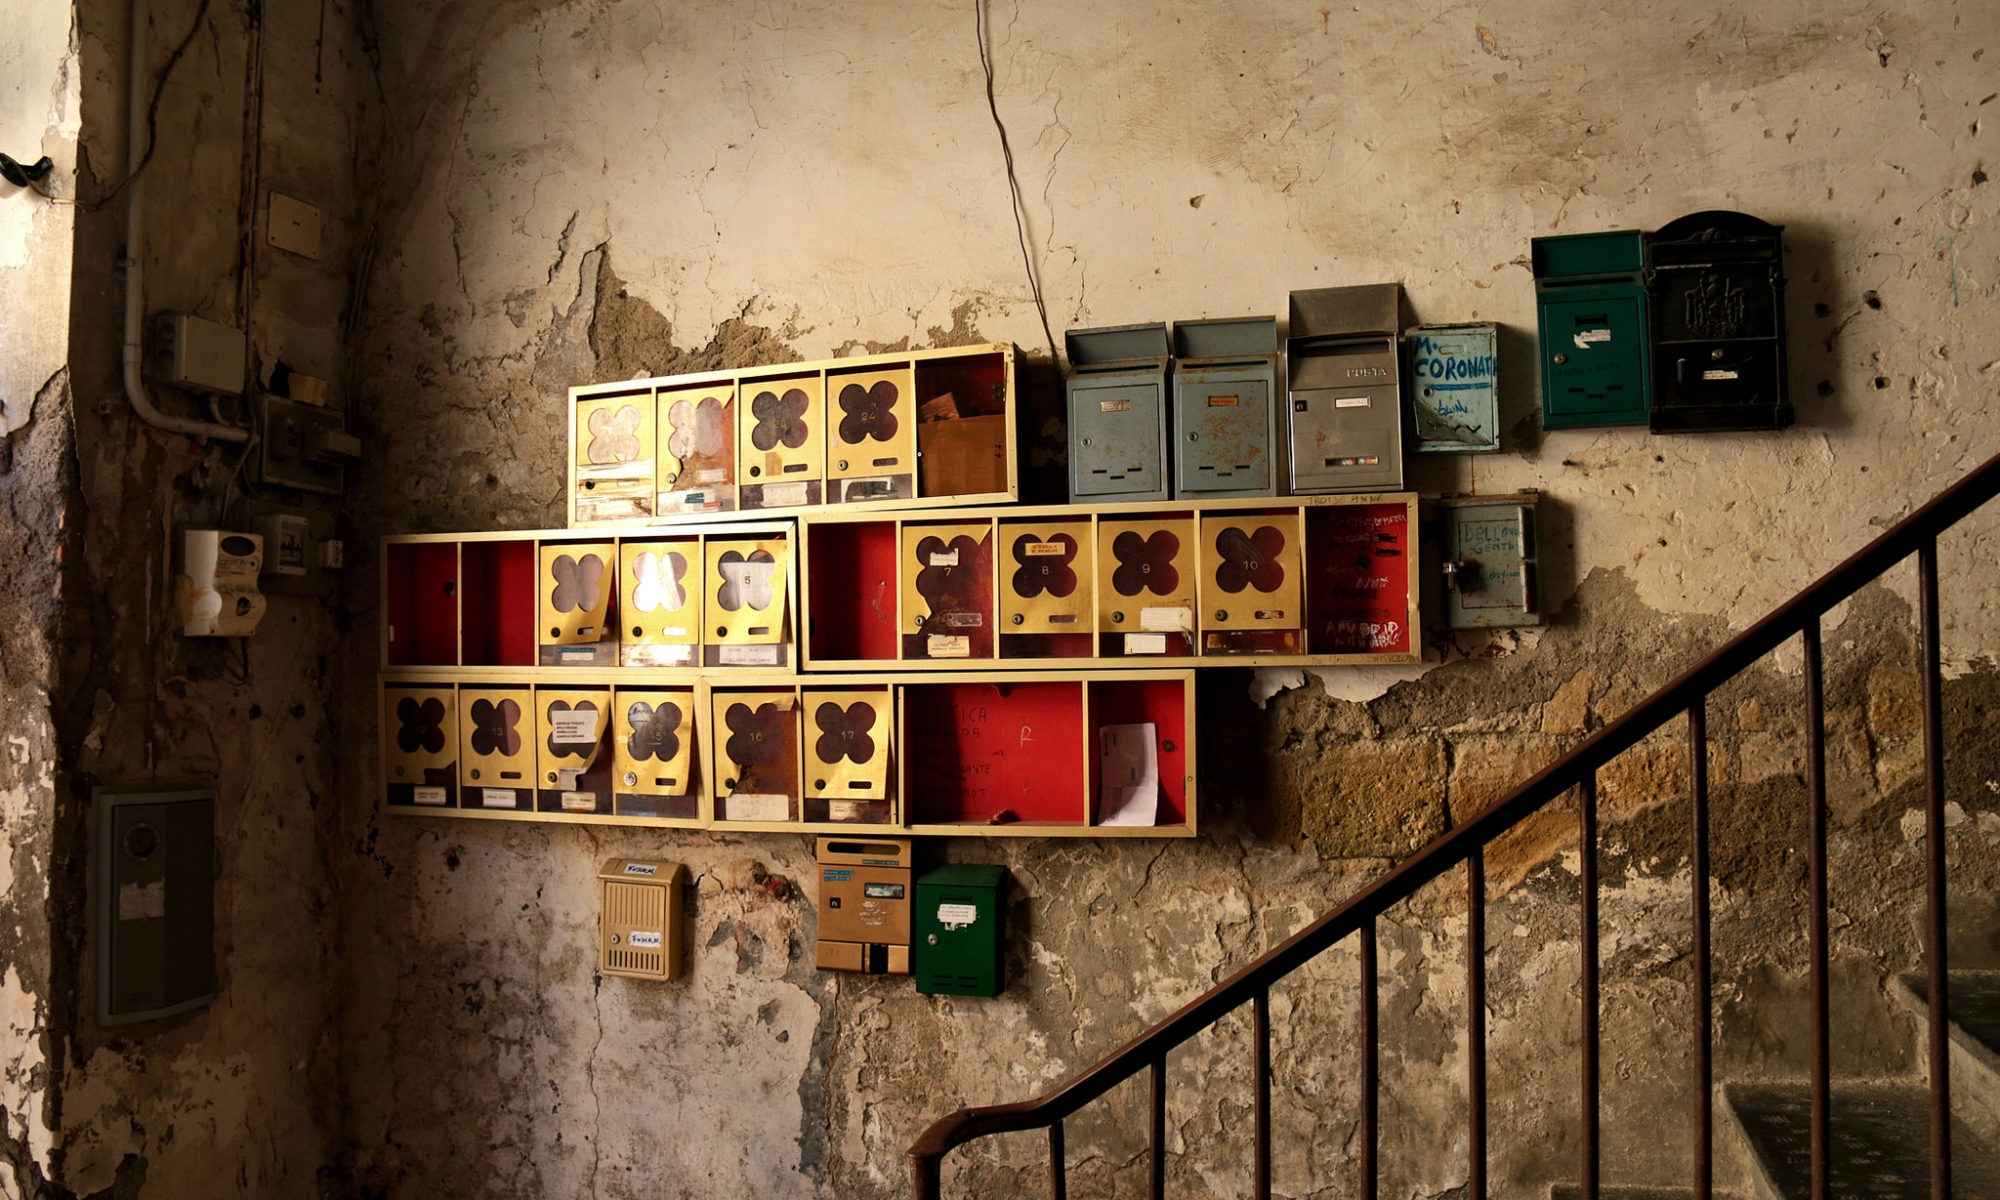 tin mail boxes bunched together on a wall with a set of stairs by the side in an amber lit room